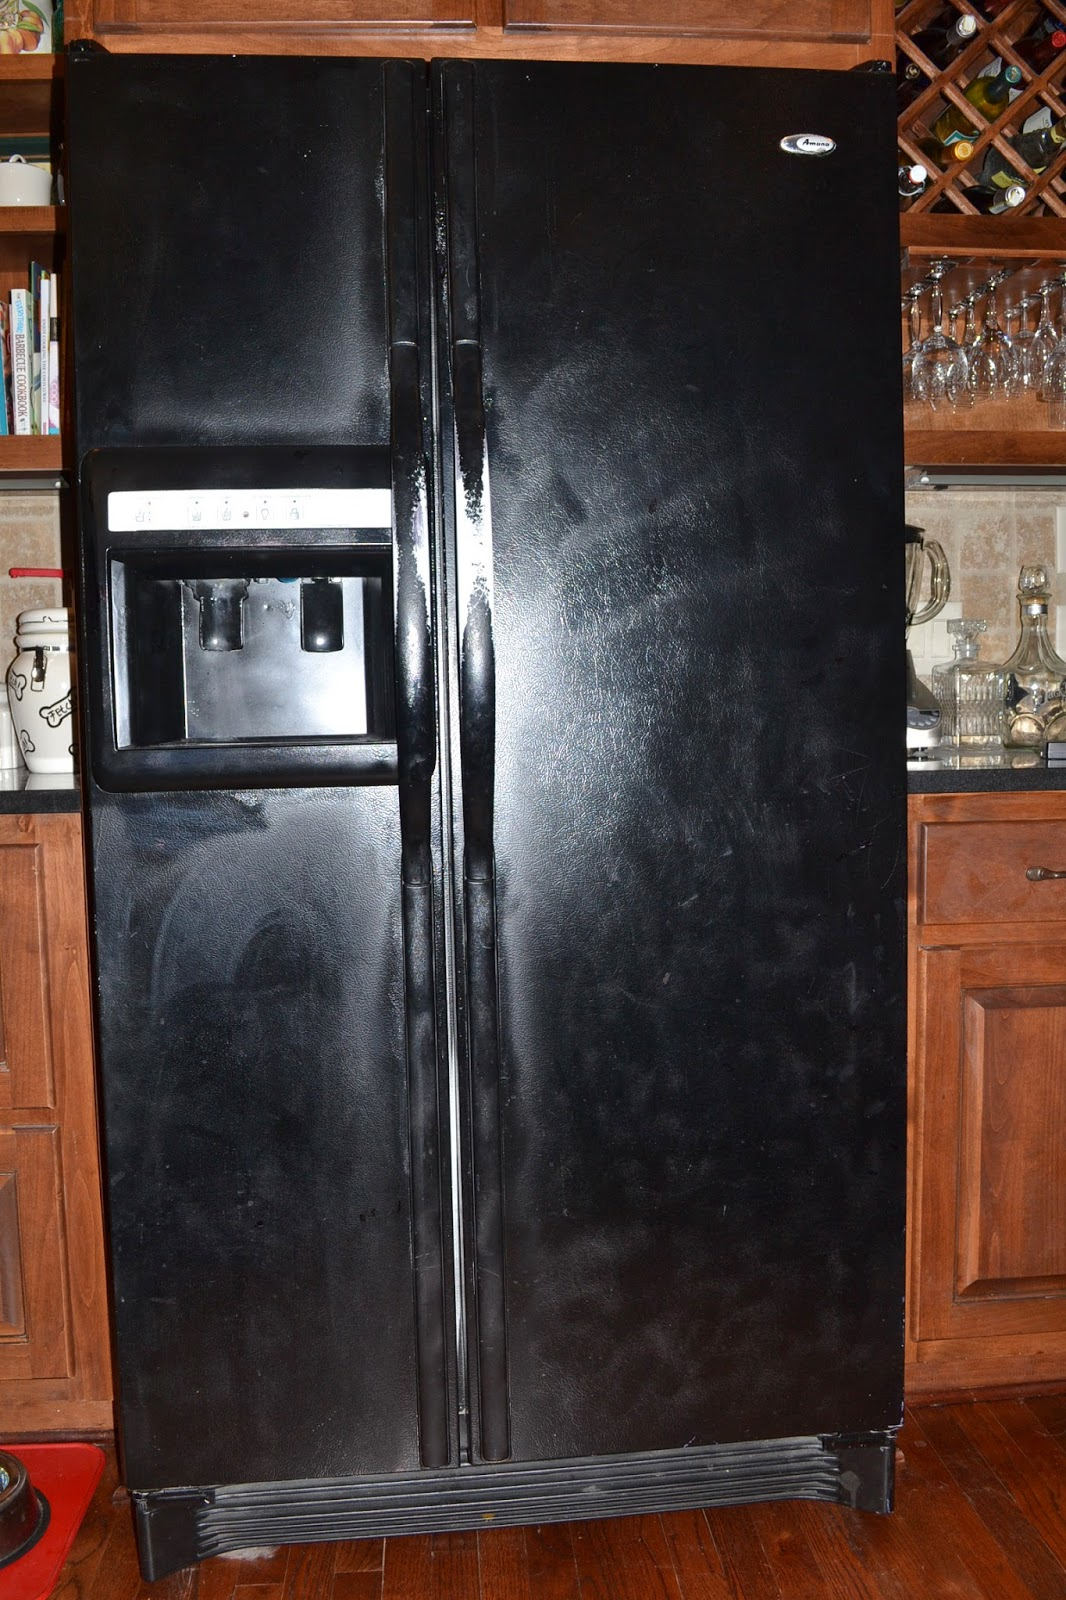 Southern Accents Refrigerator Gone Black